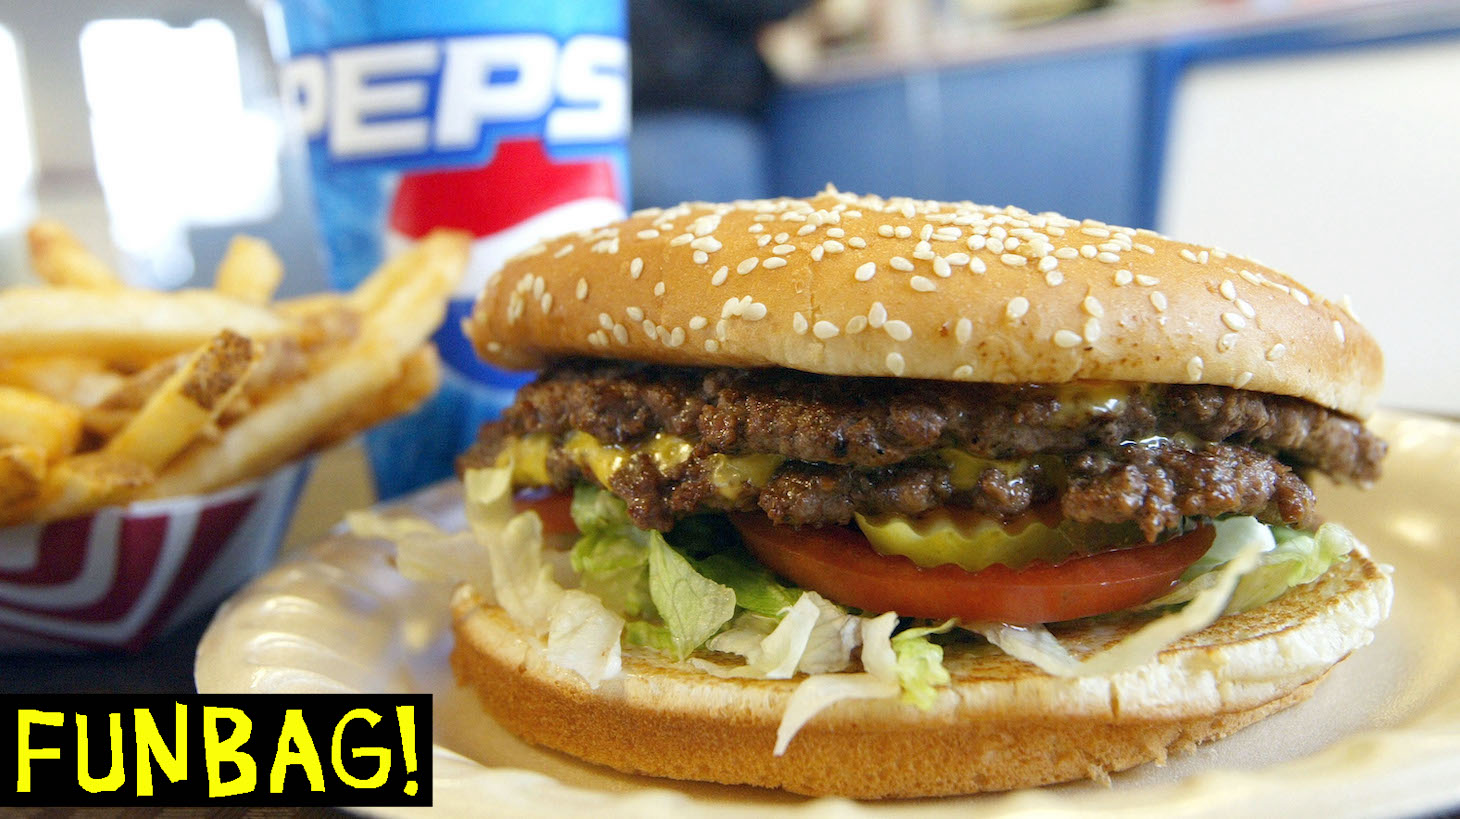 YAKIMA, WA - DECEMBER 28: A double cheeseburger, fries and soda lie on a table at Majors Hamburgers December 28, 2003 in Yakima, Washington. Two farms have been quarantined in Sunnyside and Mabton, Washington by the U.S.D.A after it was determined that a cow that came from the farms had been infected with mad cow disease, the first such case in the U.S. (Photo by Justin Sullivan/Getty Images)